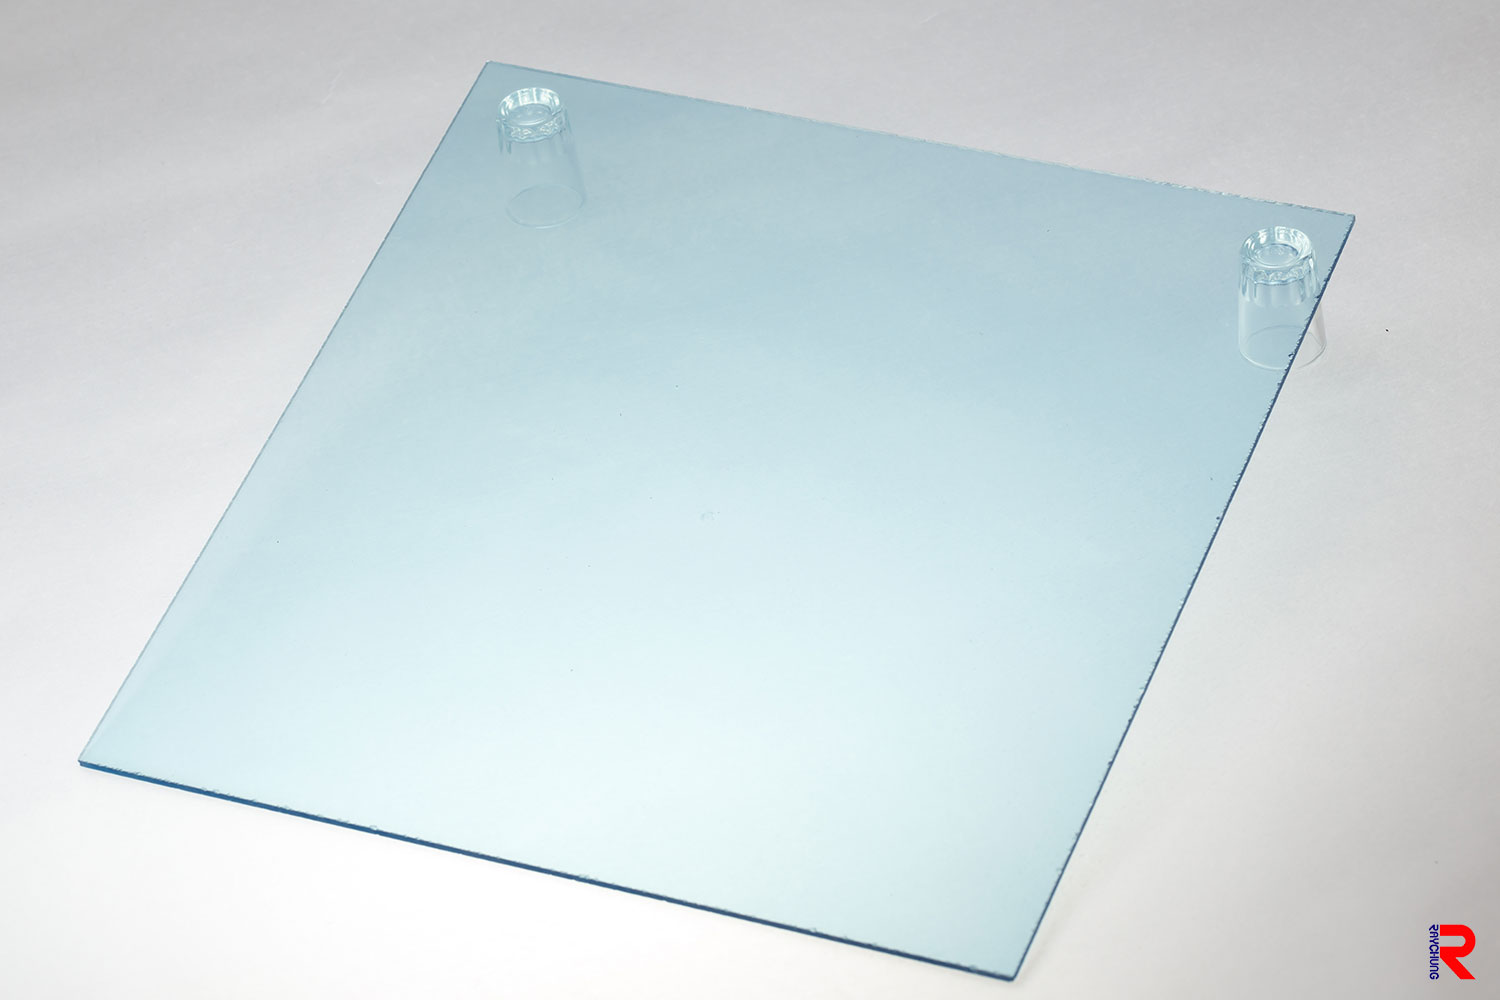 IR-Cut Sheet - Acrylic IR-Cut Sheet